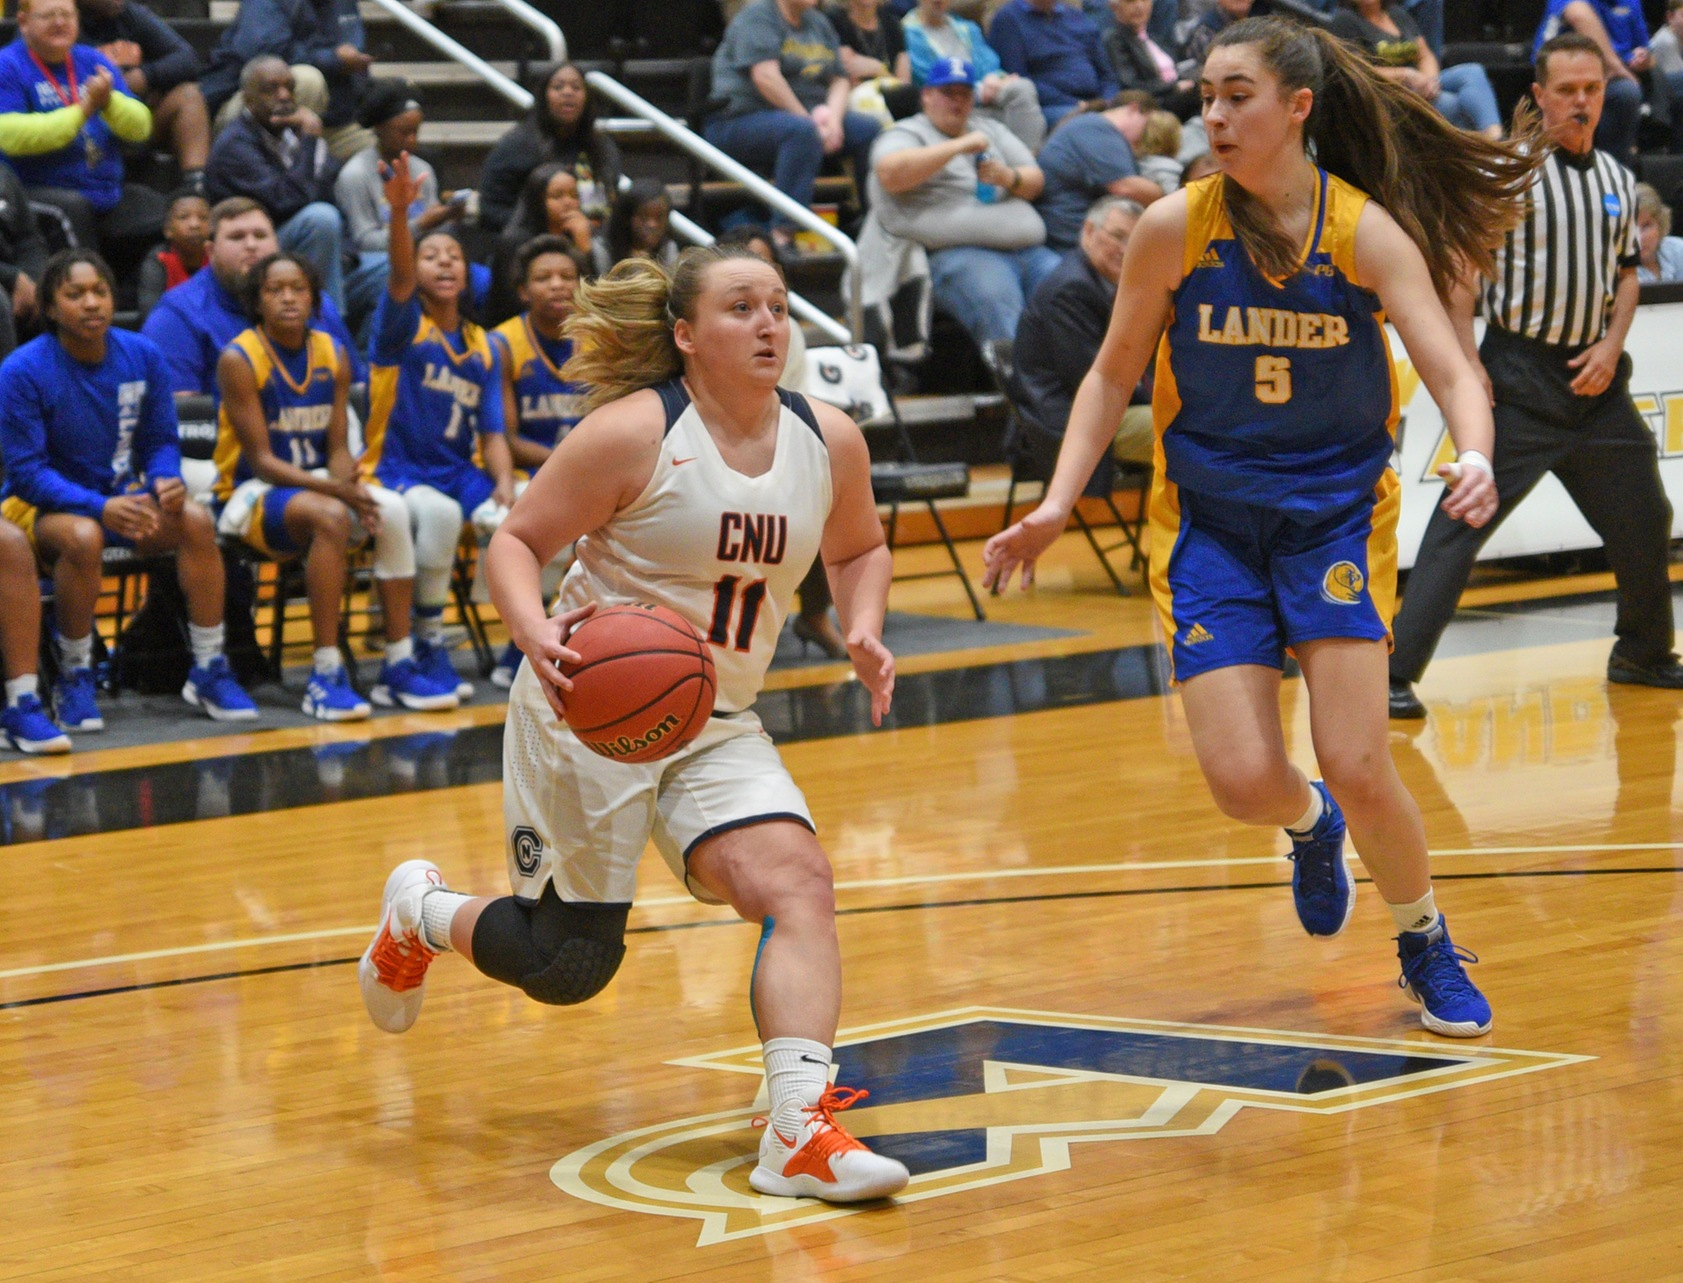 C-N's rally falls shy as Lander leads wire-to-wire